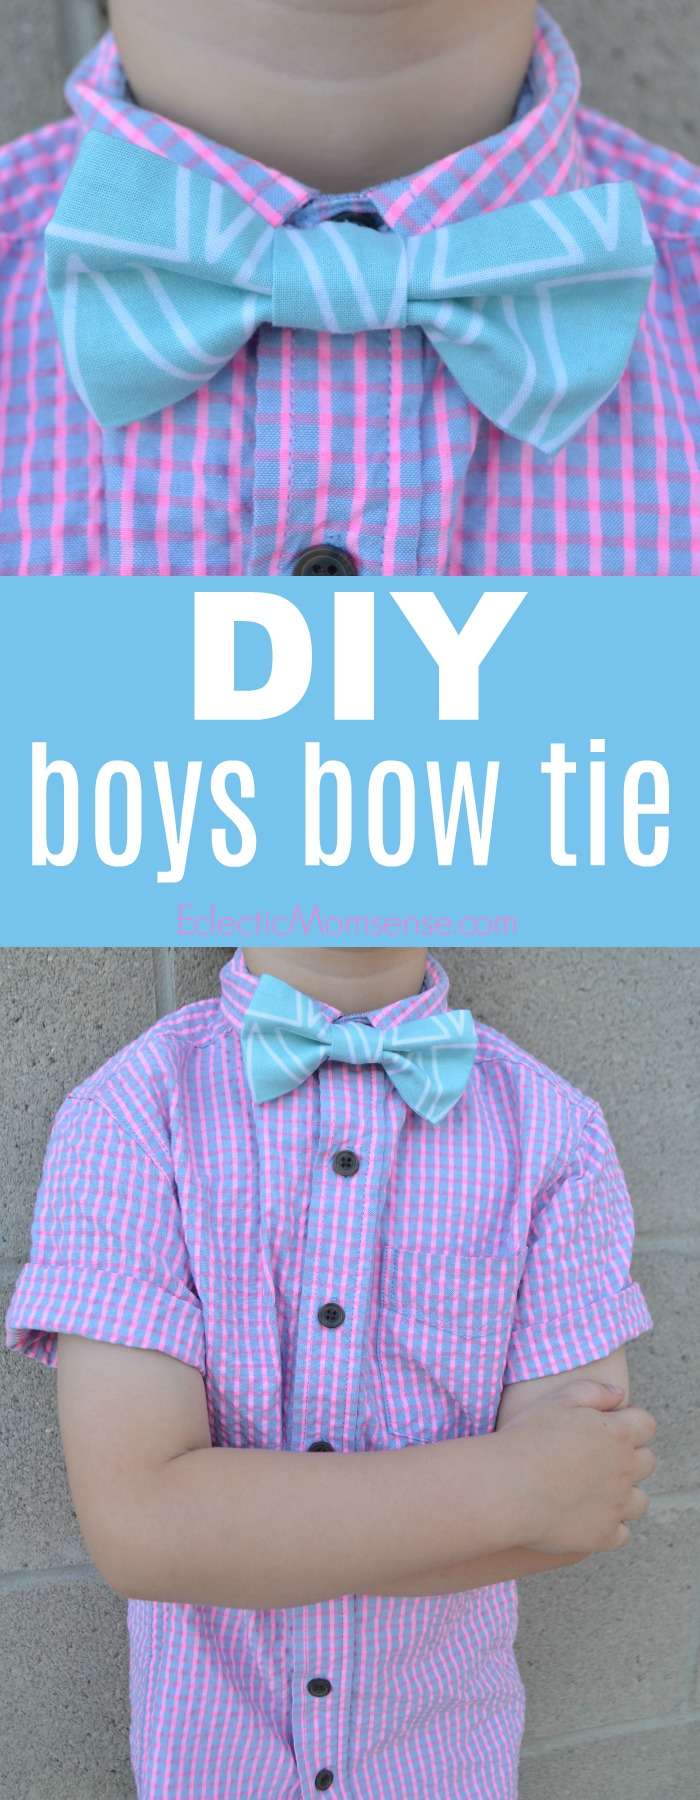 DIY Boys Bow Tie   Craft up custom bow ties with Simplicity patterns and Cricut Maker.